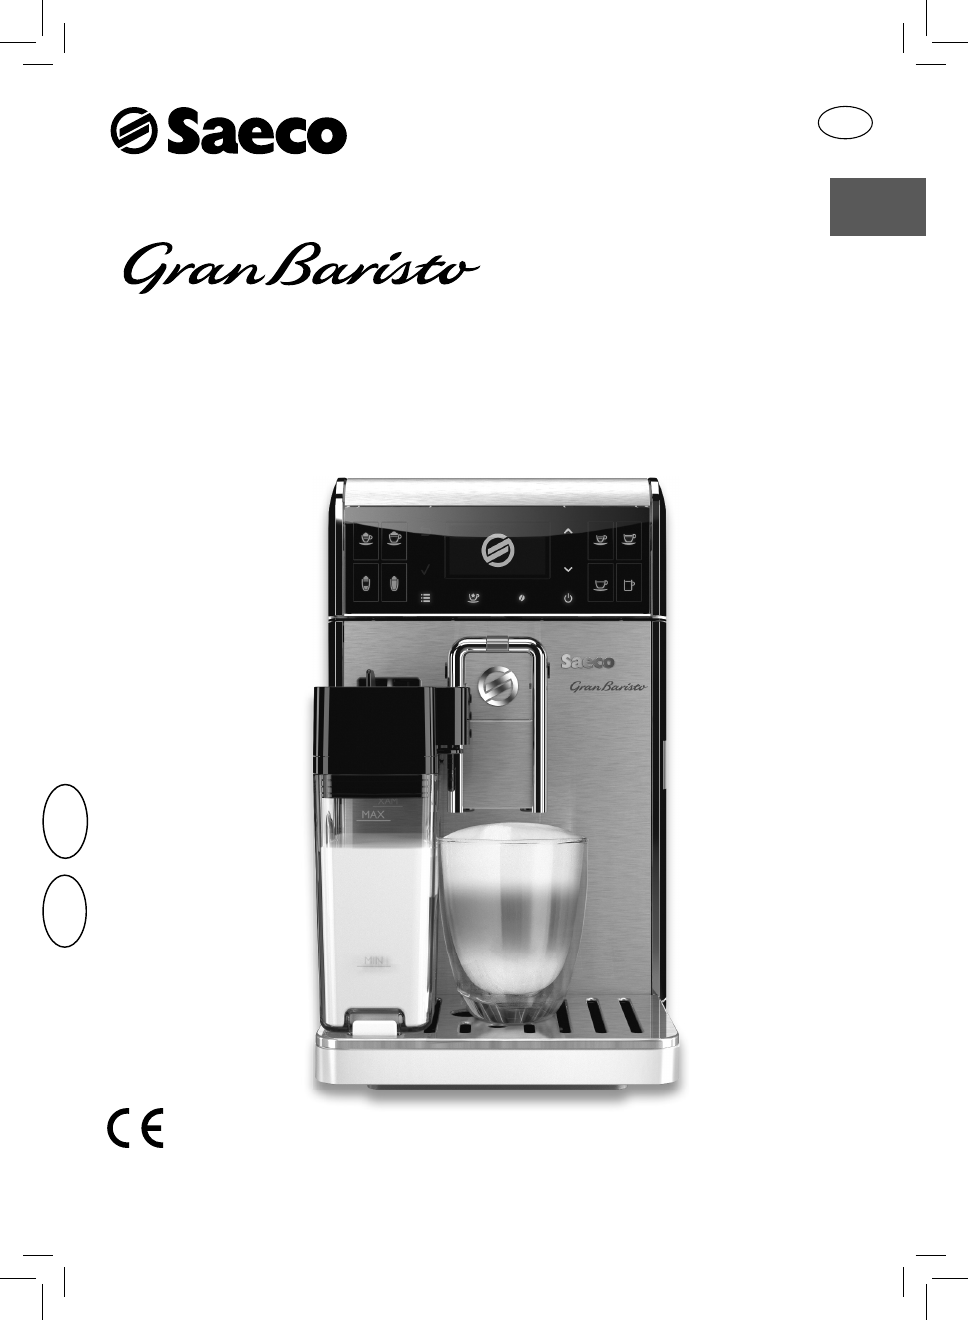 Saeco Coffee Maker Owner S Manual : Saeco Coffee Makers Coffeemaker HD8966 User Guide ManualsOnline.com